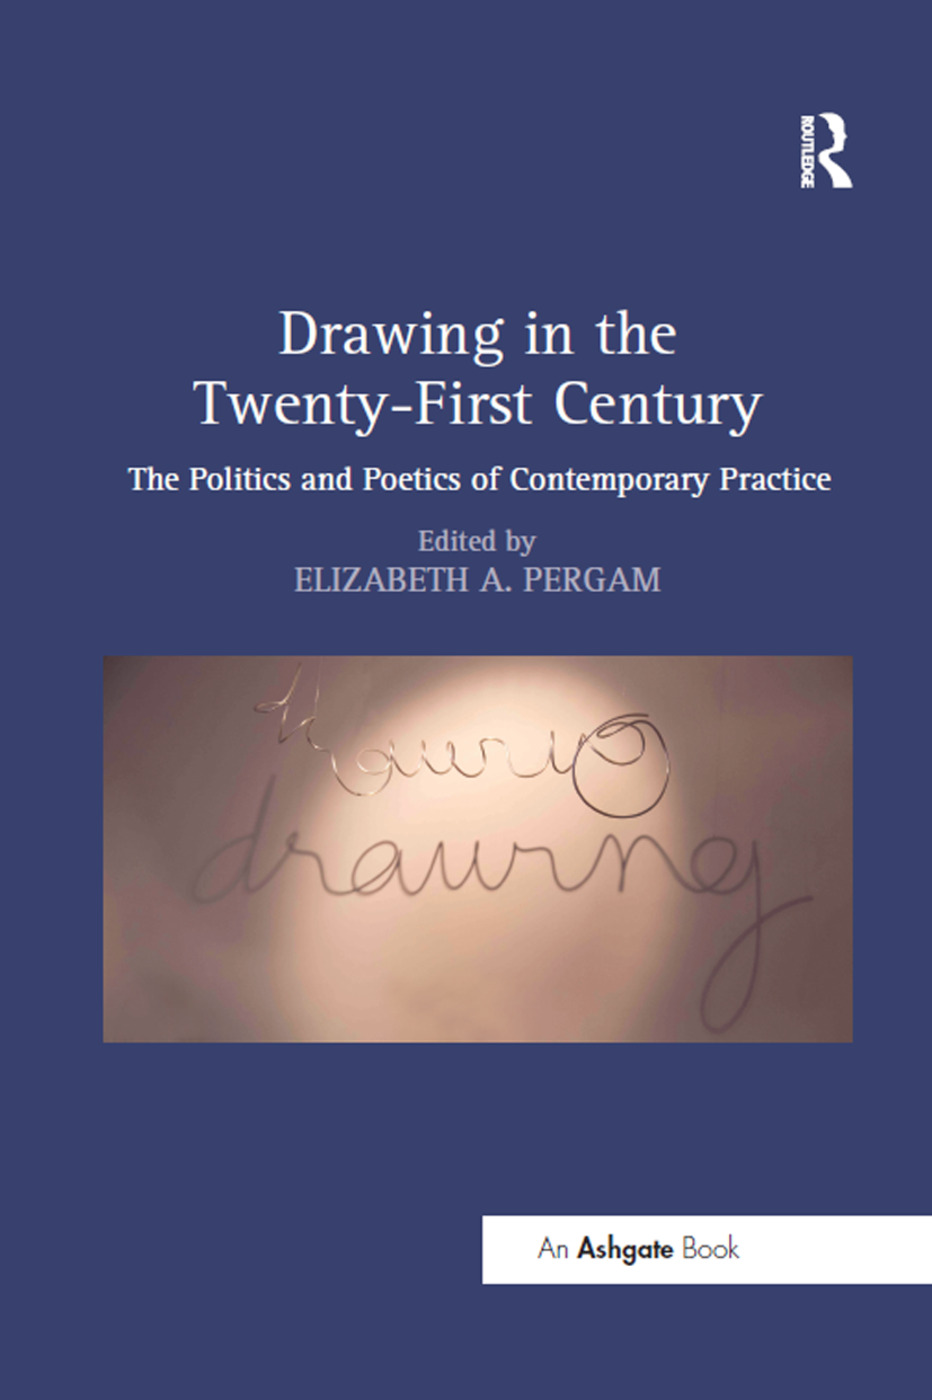 Drawing in the Twenty-First Century: The Politics and Poetics of Contemporary Practice book cover